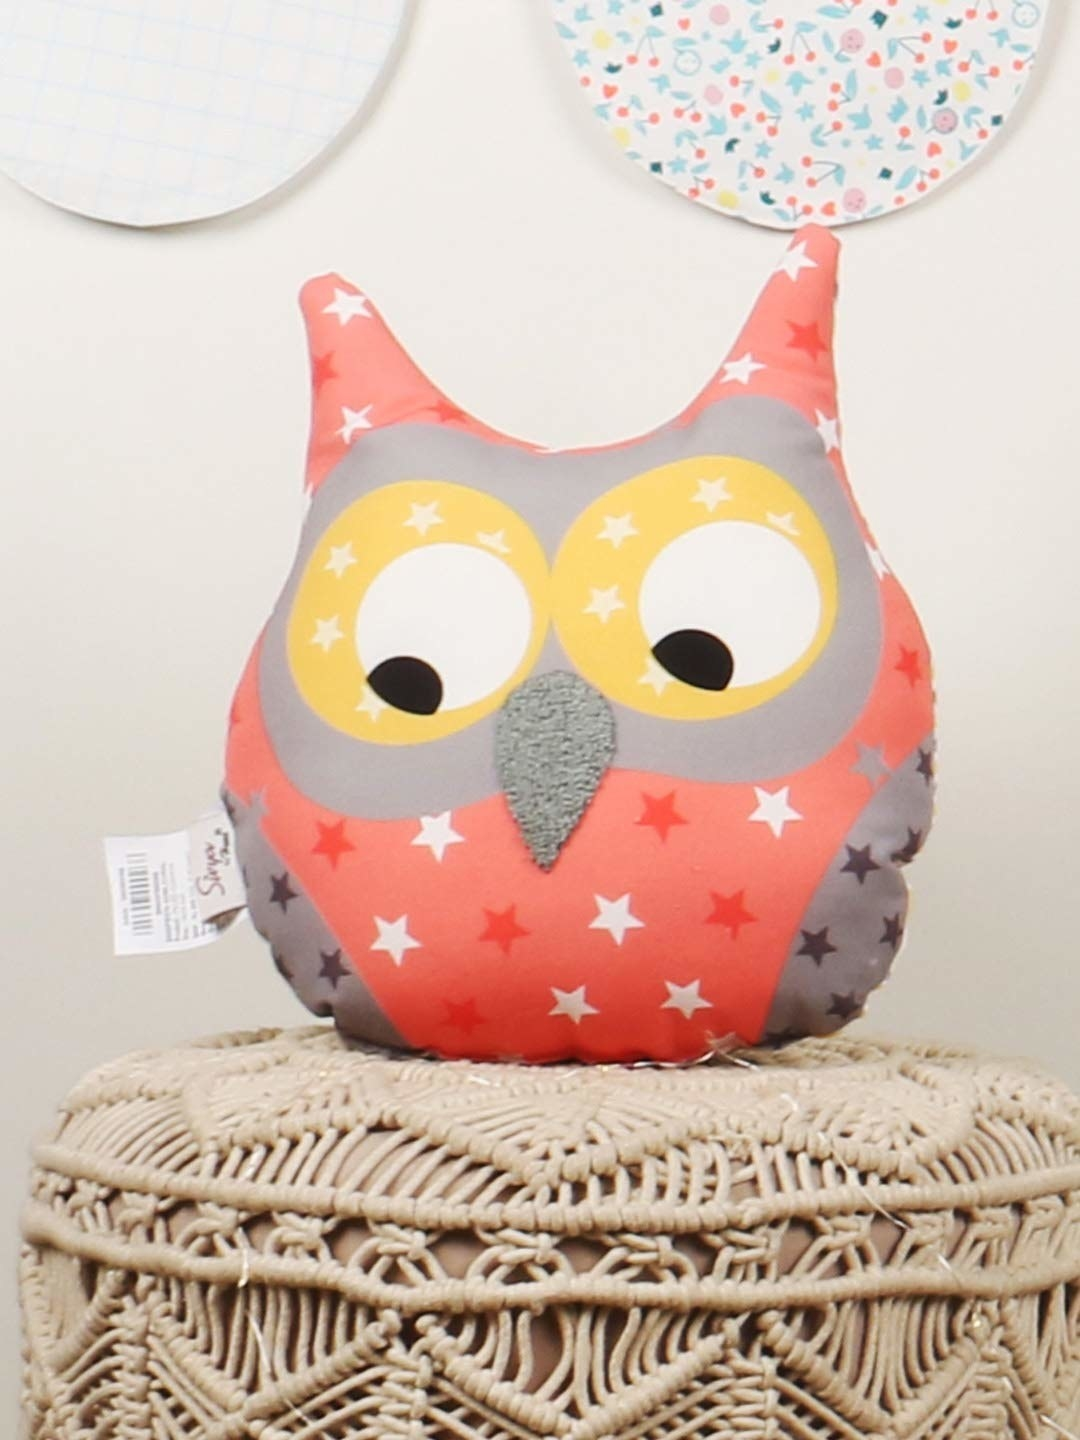 A colourful owl cushion that has its eyes averted away